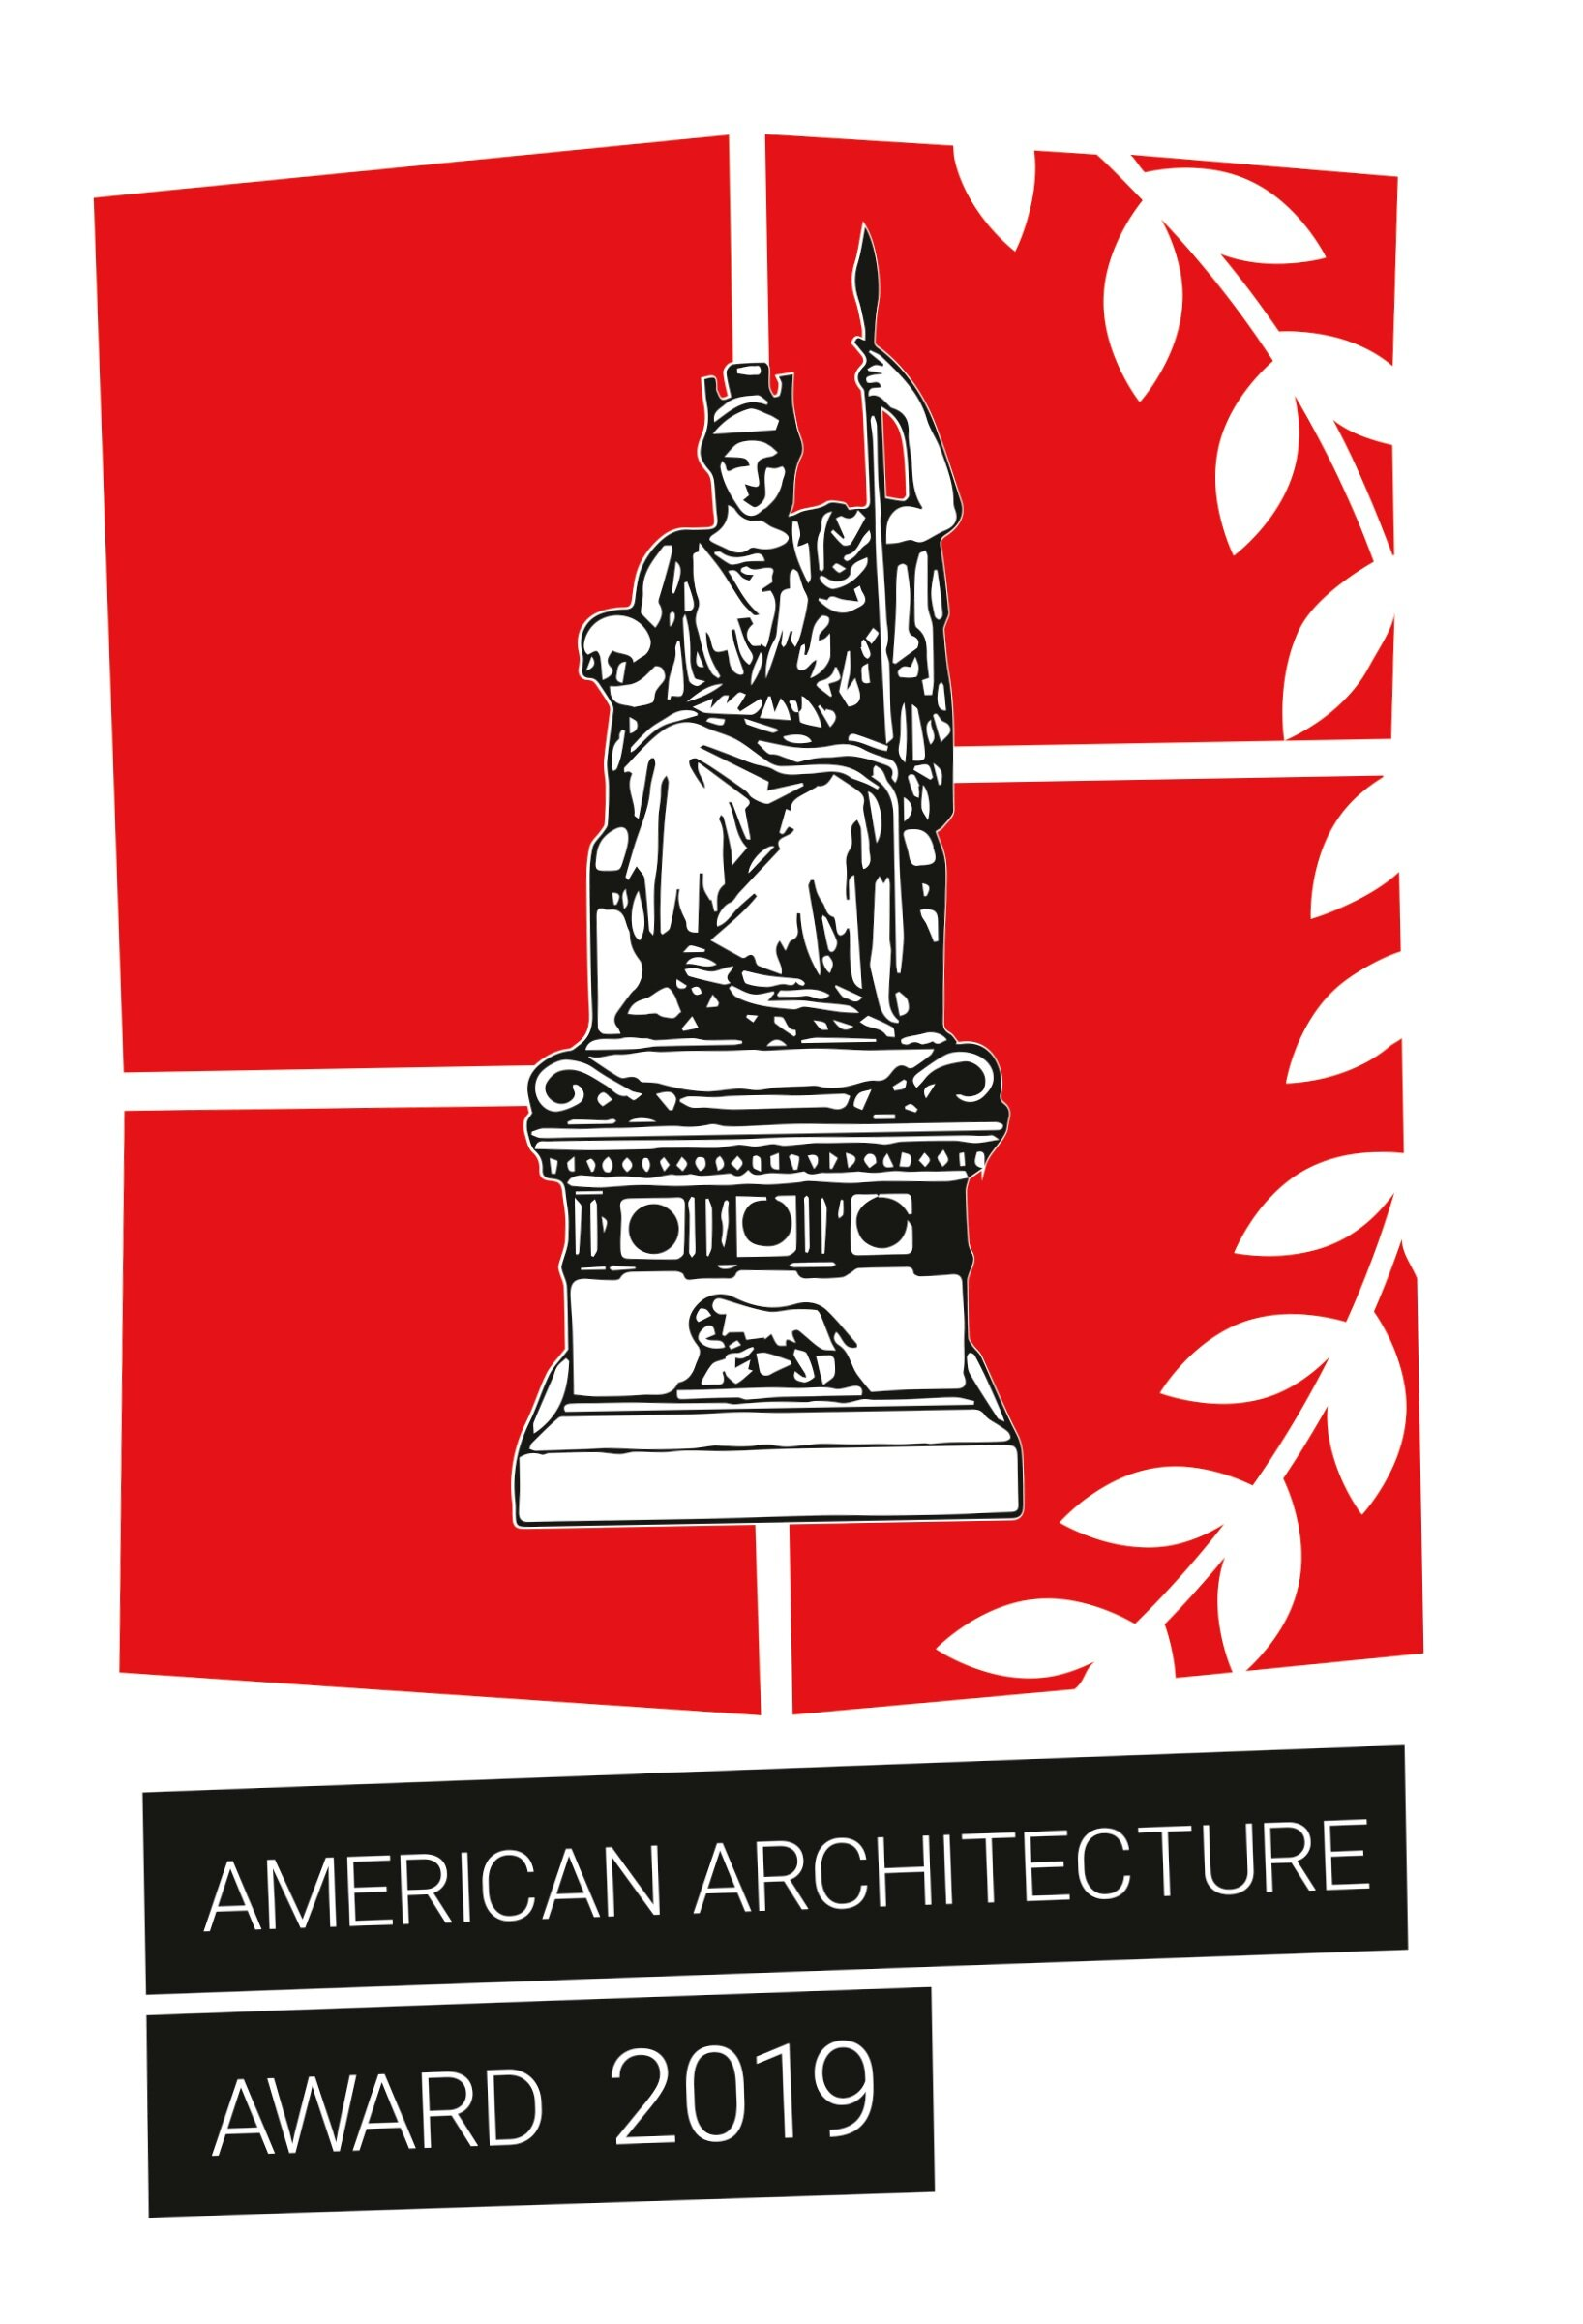 Recipient of the 2019 American Architecture Award for Best Mixed-Used Building. -